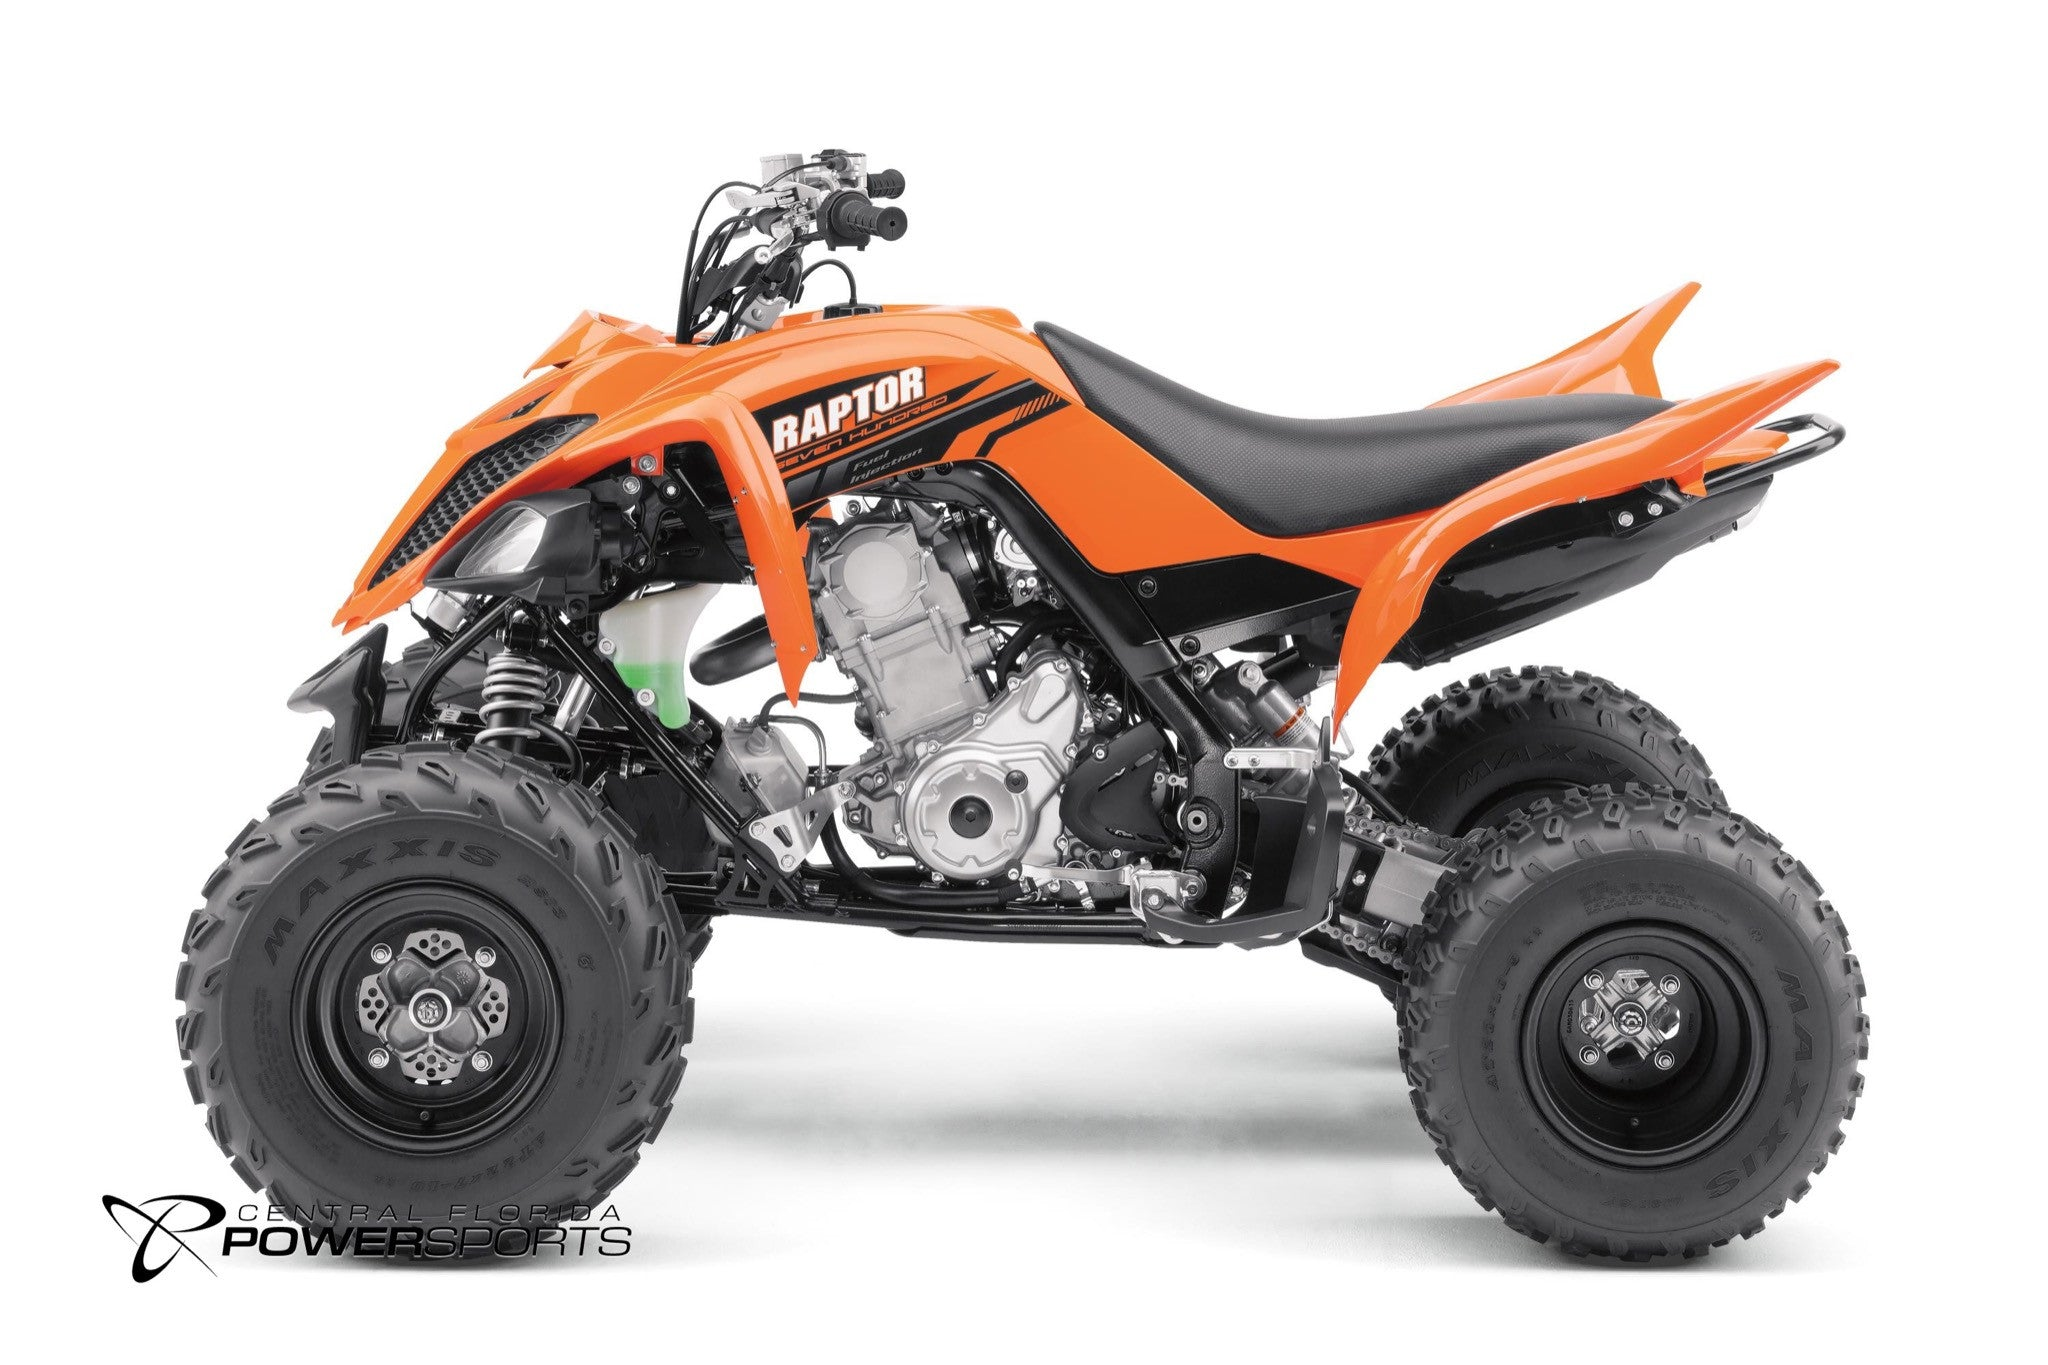 2017 yamaha raptor 700 sport atv for sale kissimmee central florida powersports. Black Bedroom Furniture Sets. Home Design Ideas